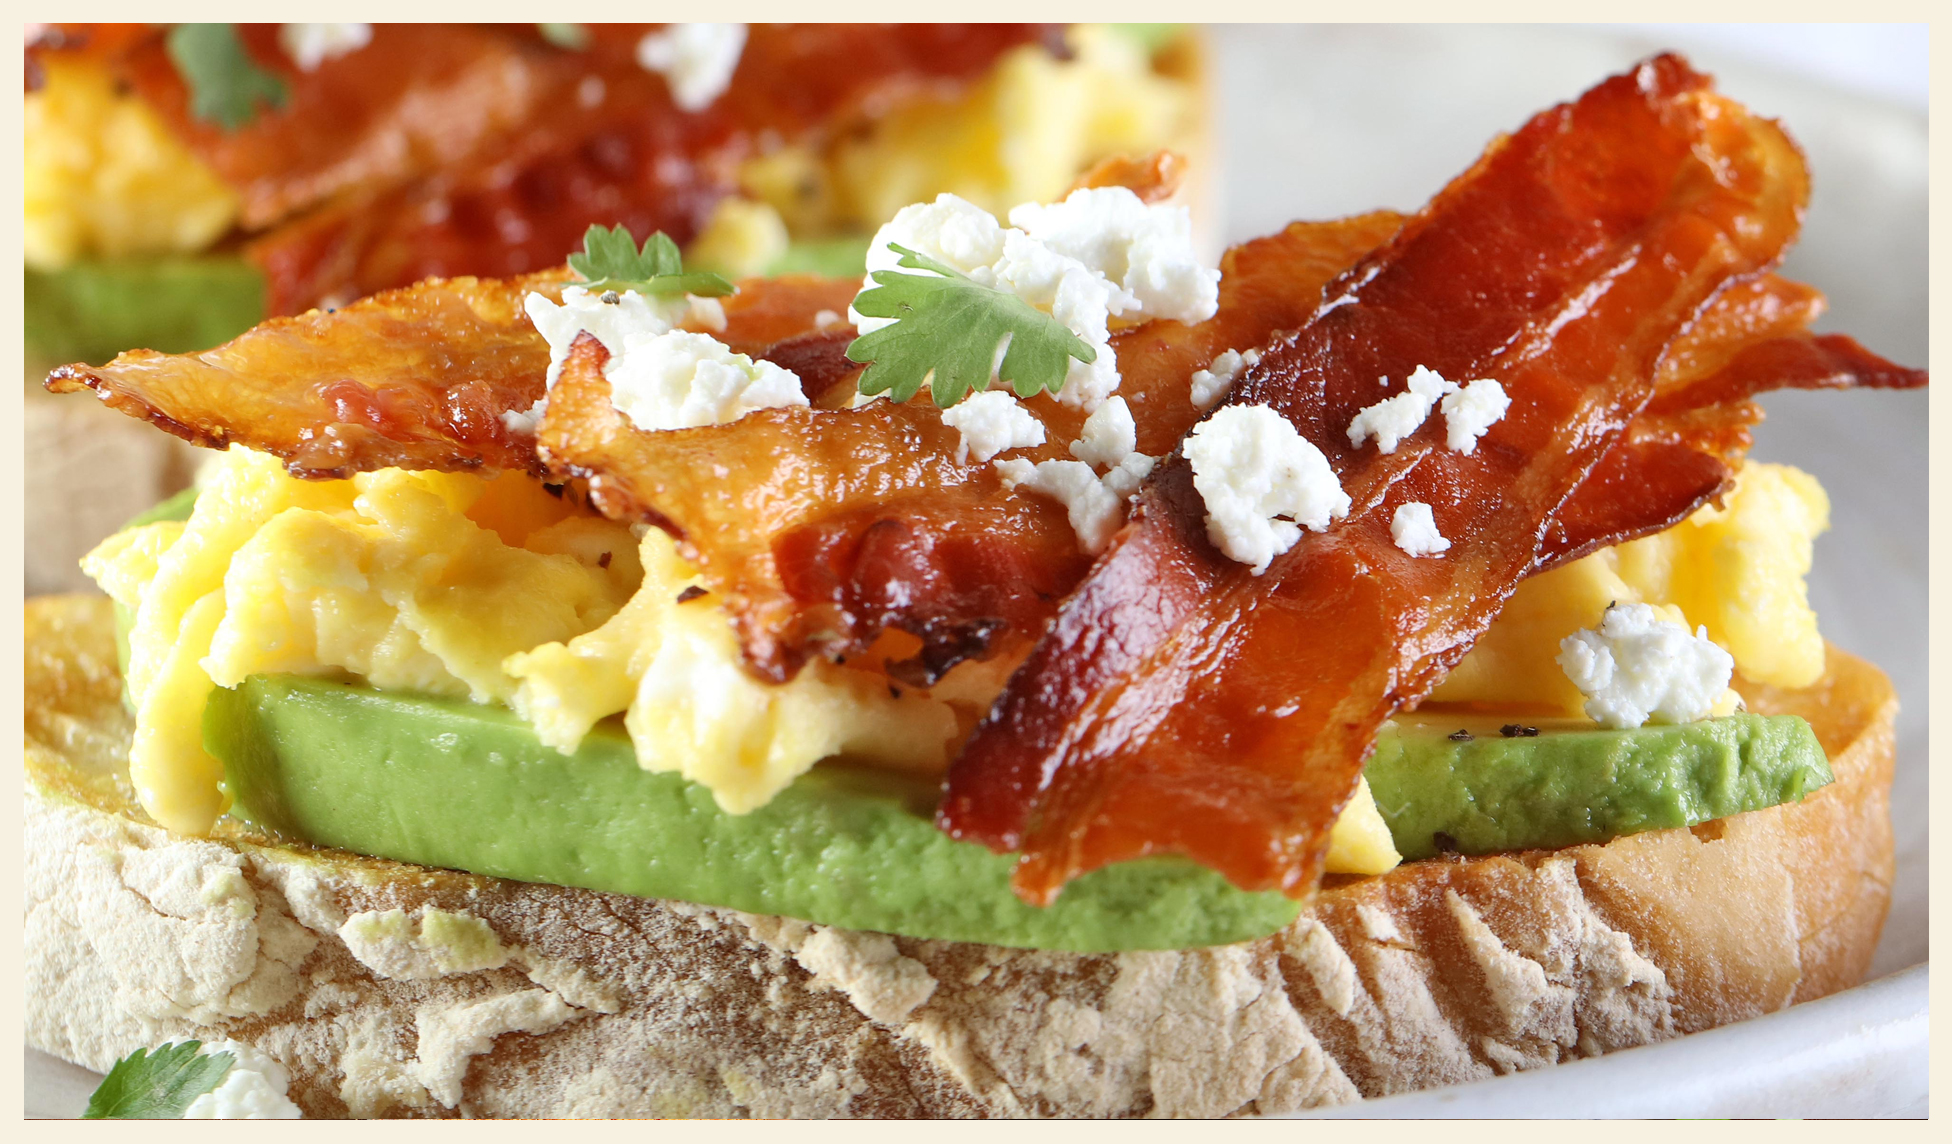 Avocado Toast with Bacon, Scrambled Eggs and Goat Cheese